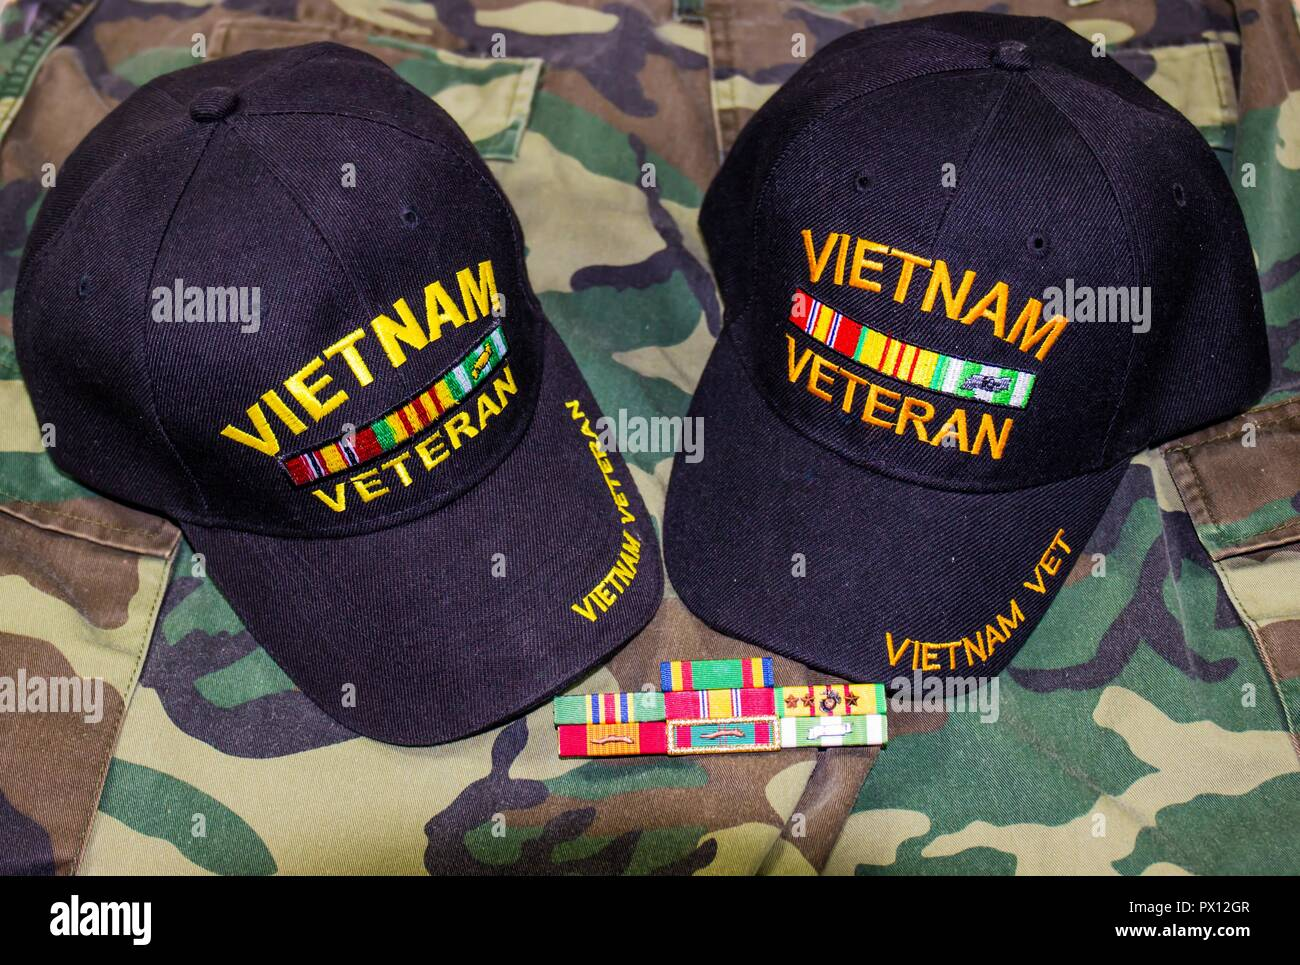 Two Vietnam Veteran Hats With Service Ribbons On Camouflage Uniform - Stock Image